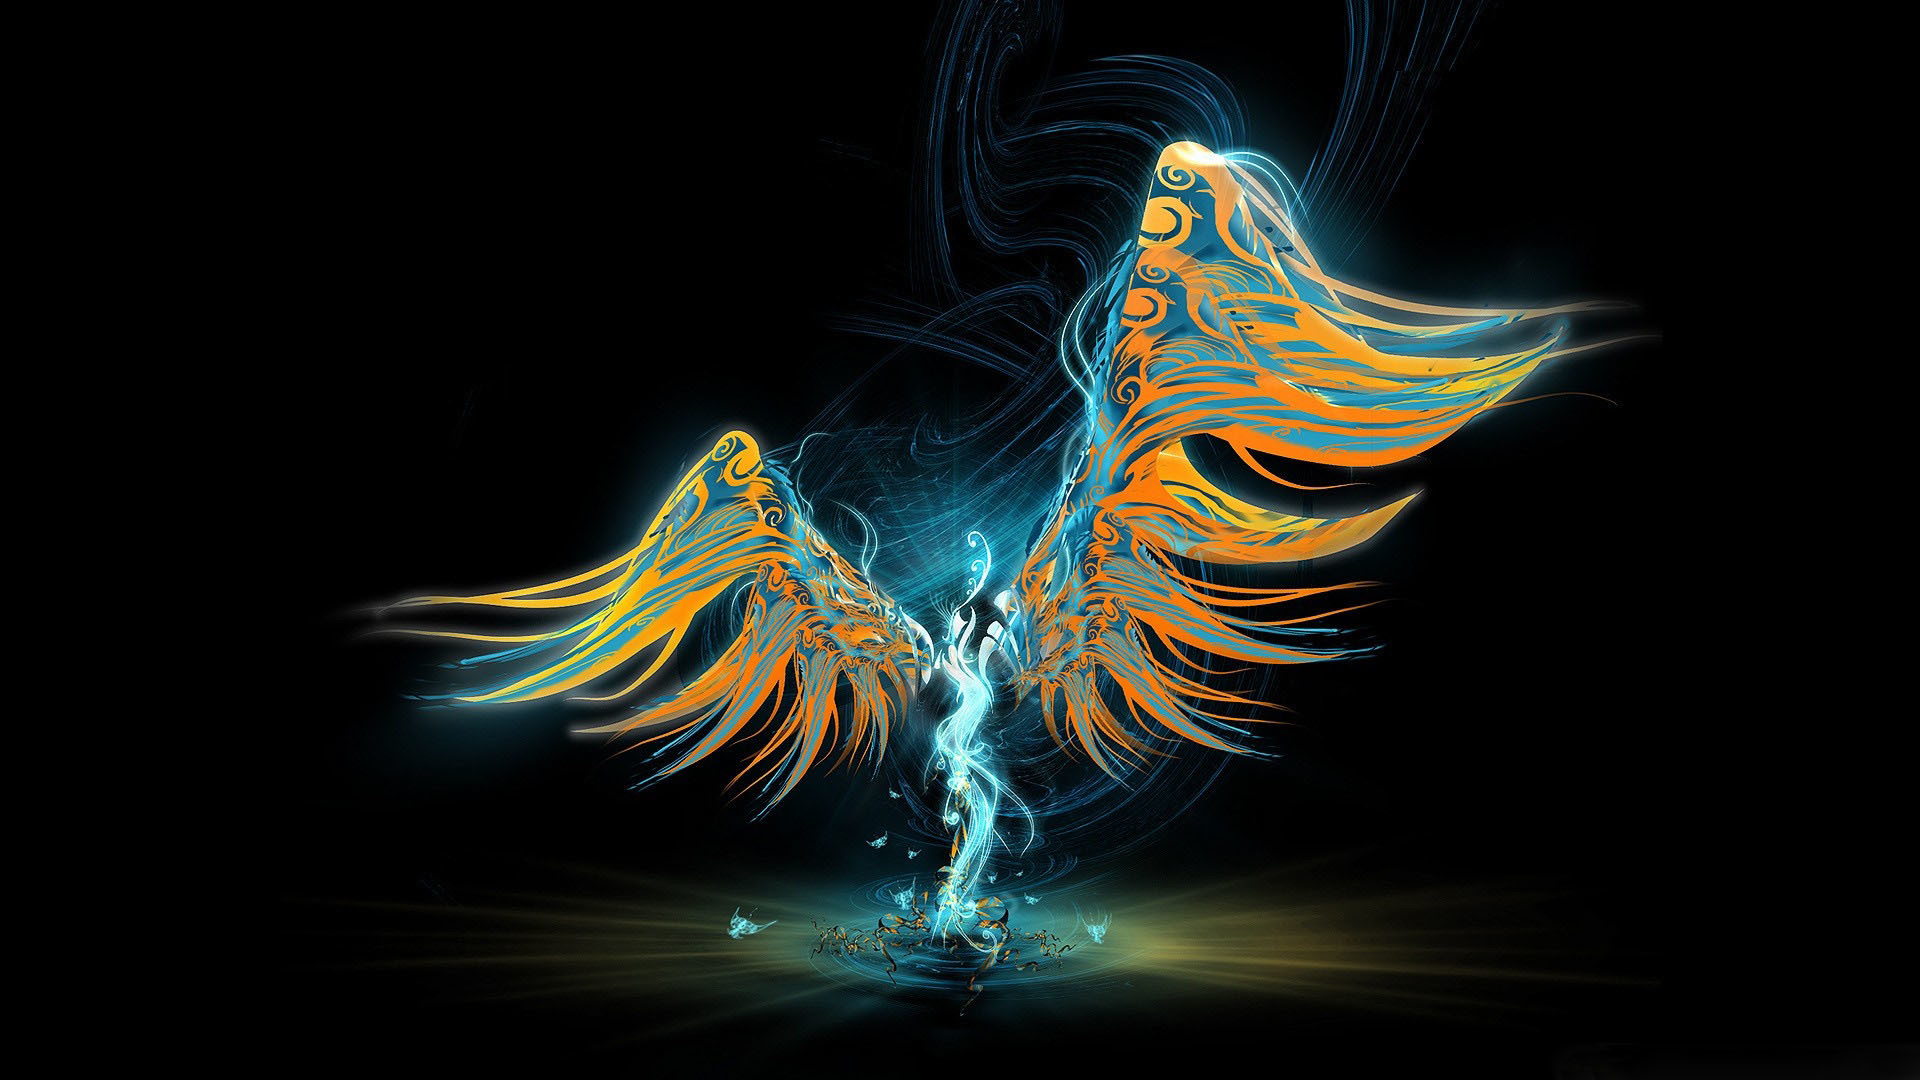 Cool 1080P HD Wallpapers. Cool Angel Abstract 1080p.